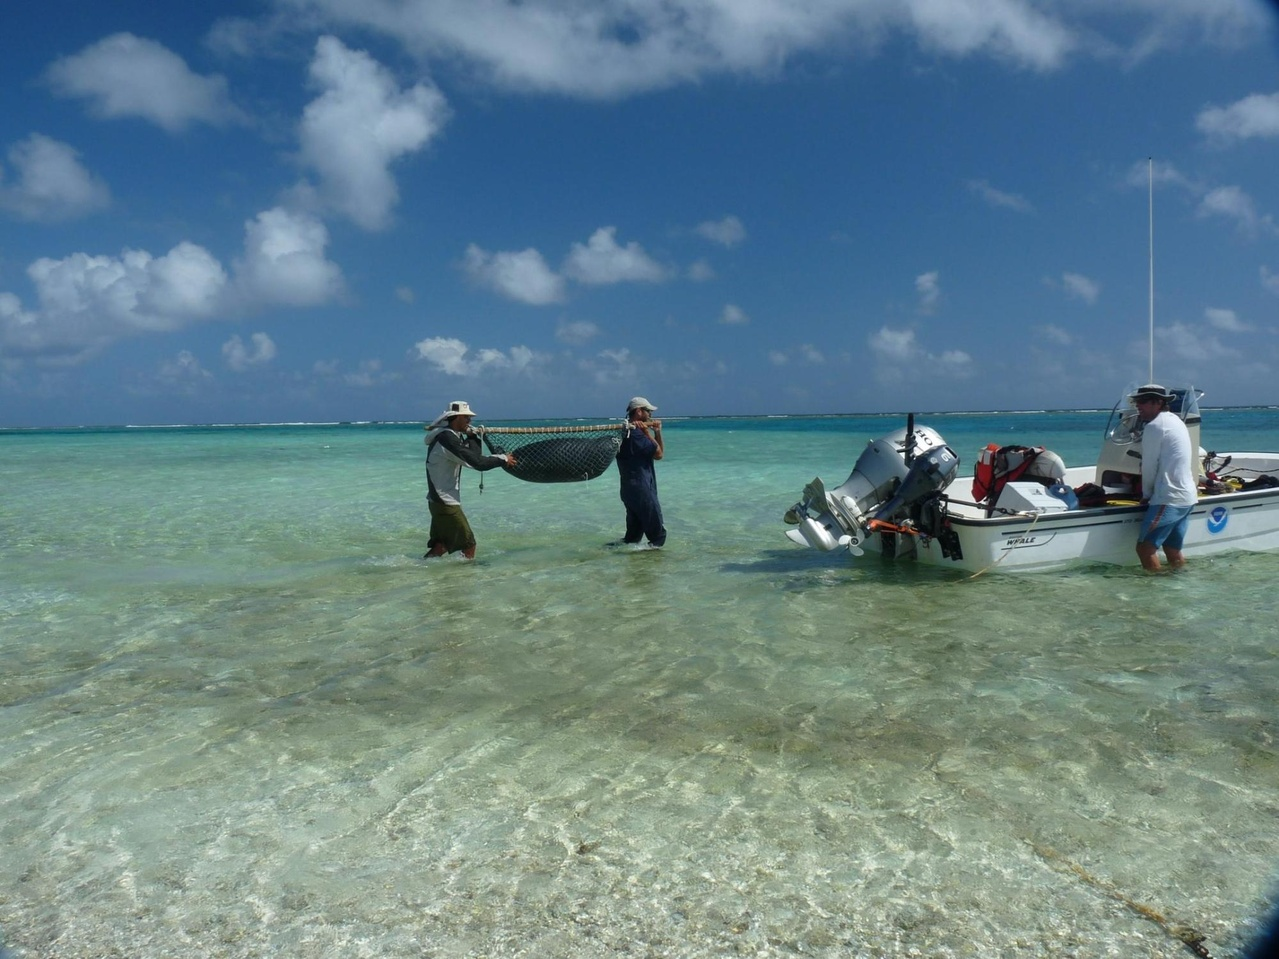 Photograph of researchers carrying a recently weaned pup to an outboard vessel anchored in shallow water.